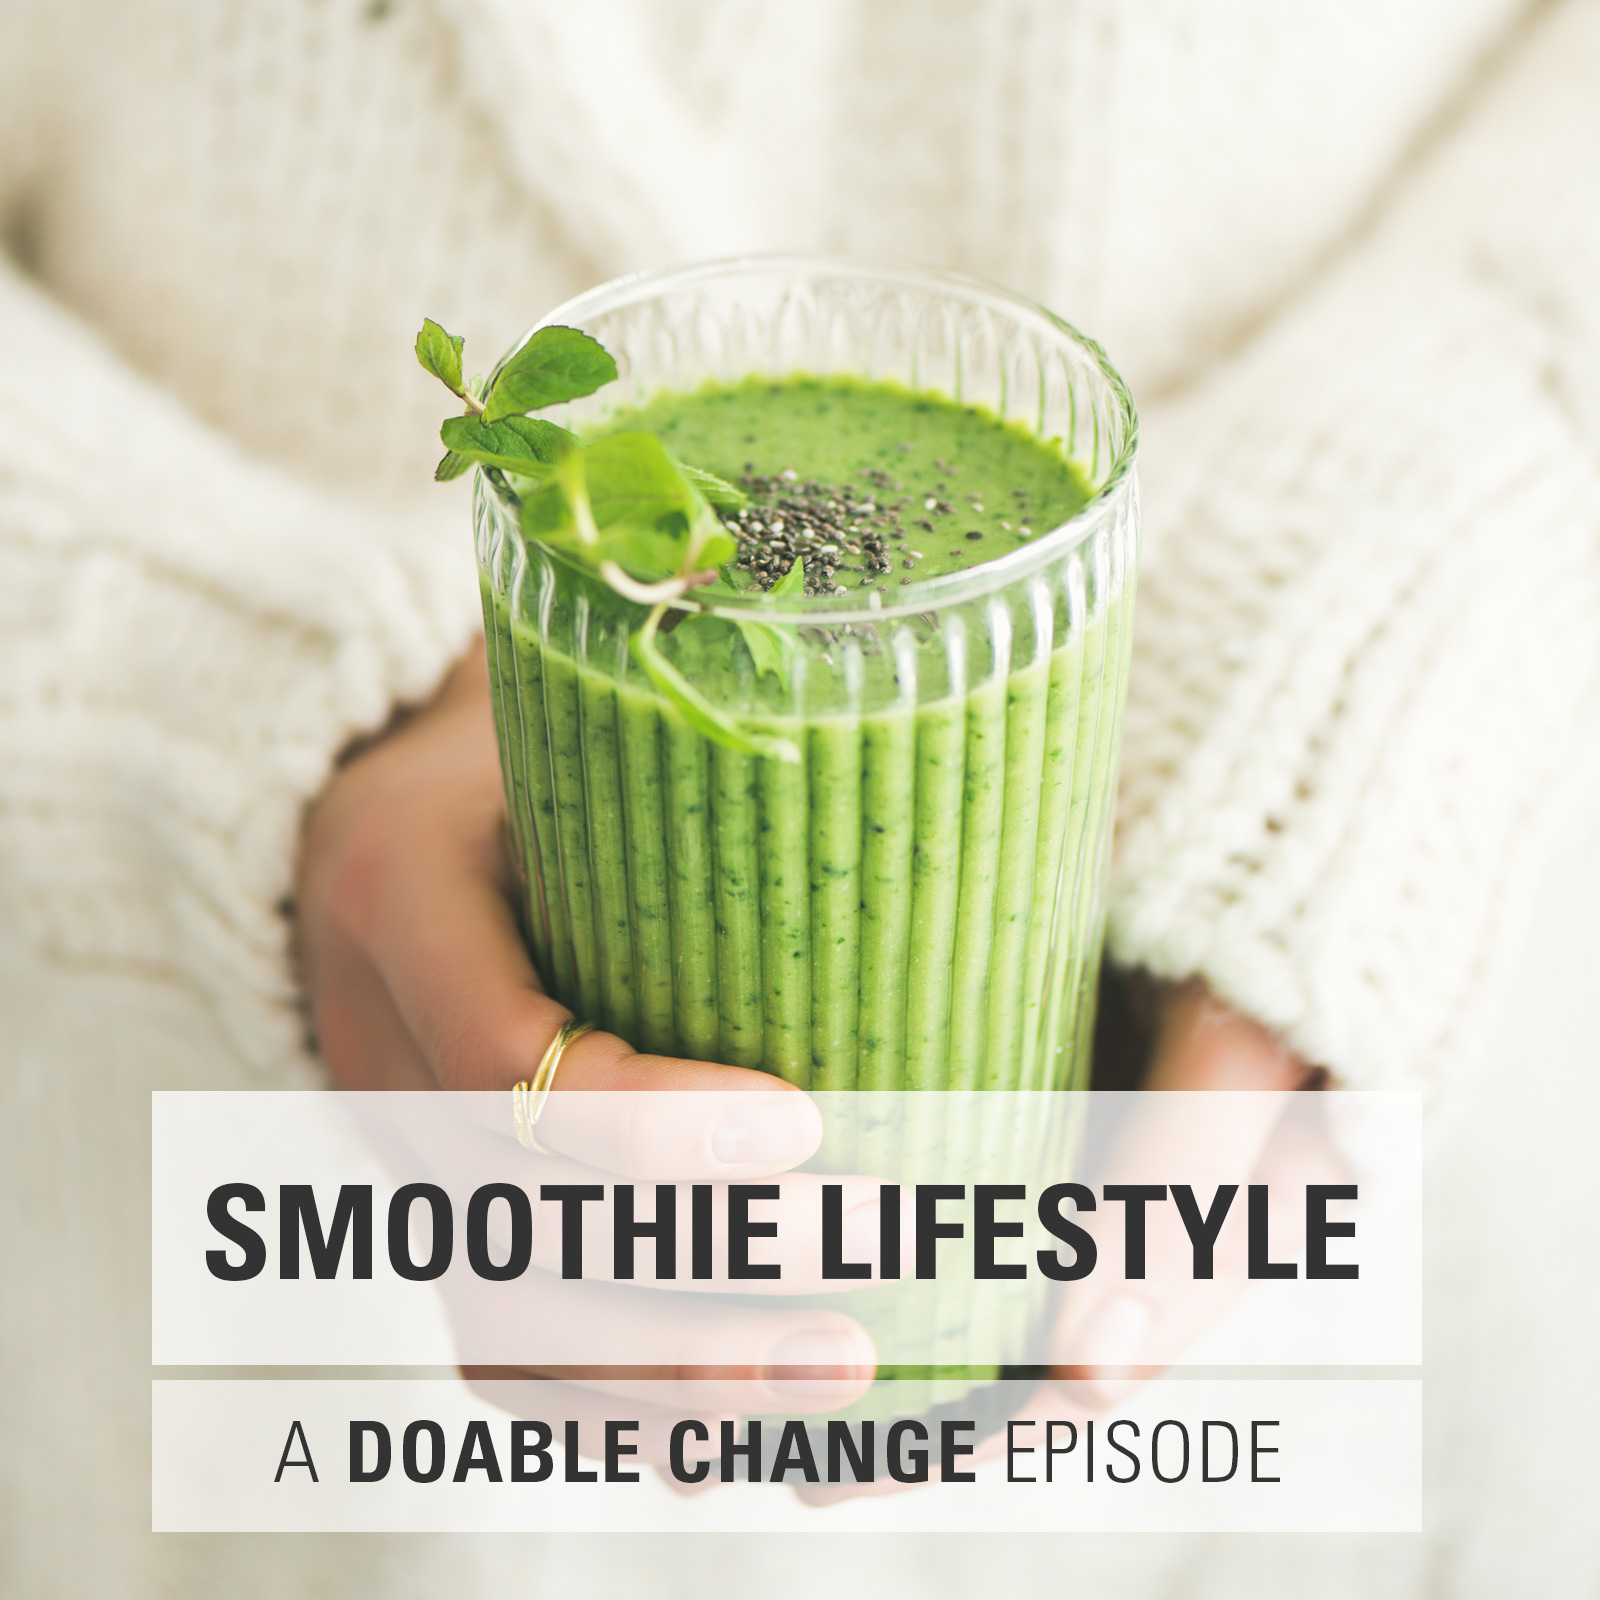 Doable Change: Create A Smoothie Lifestyle